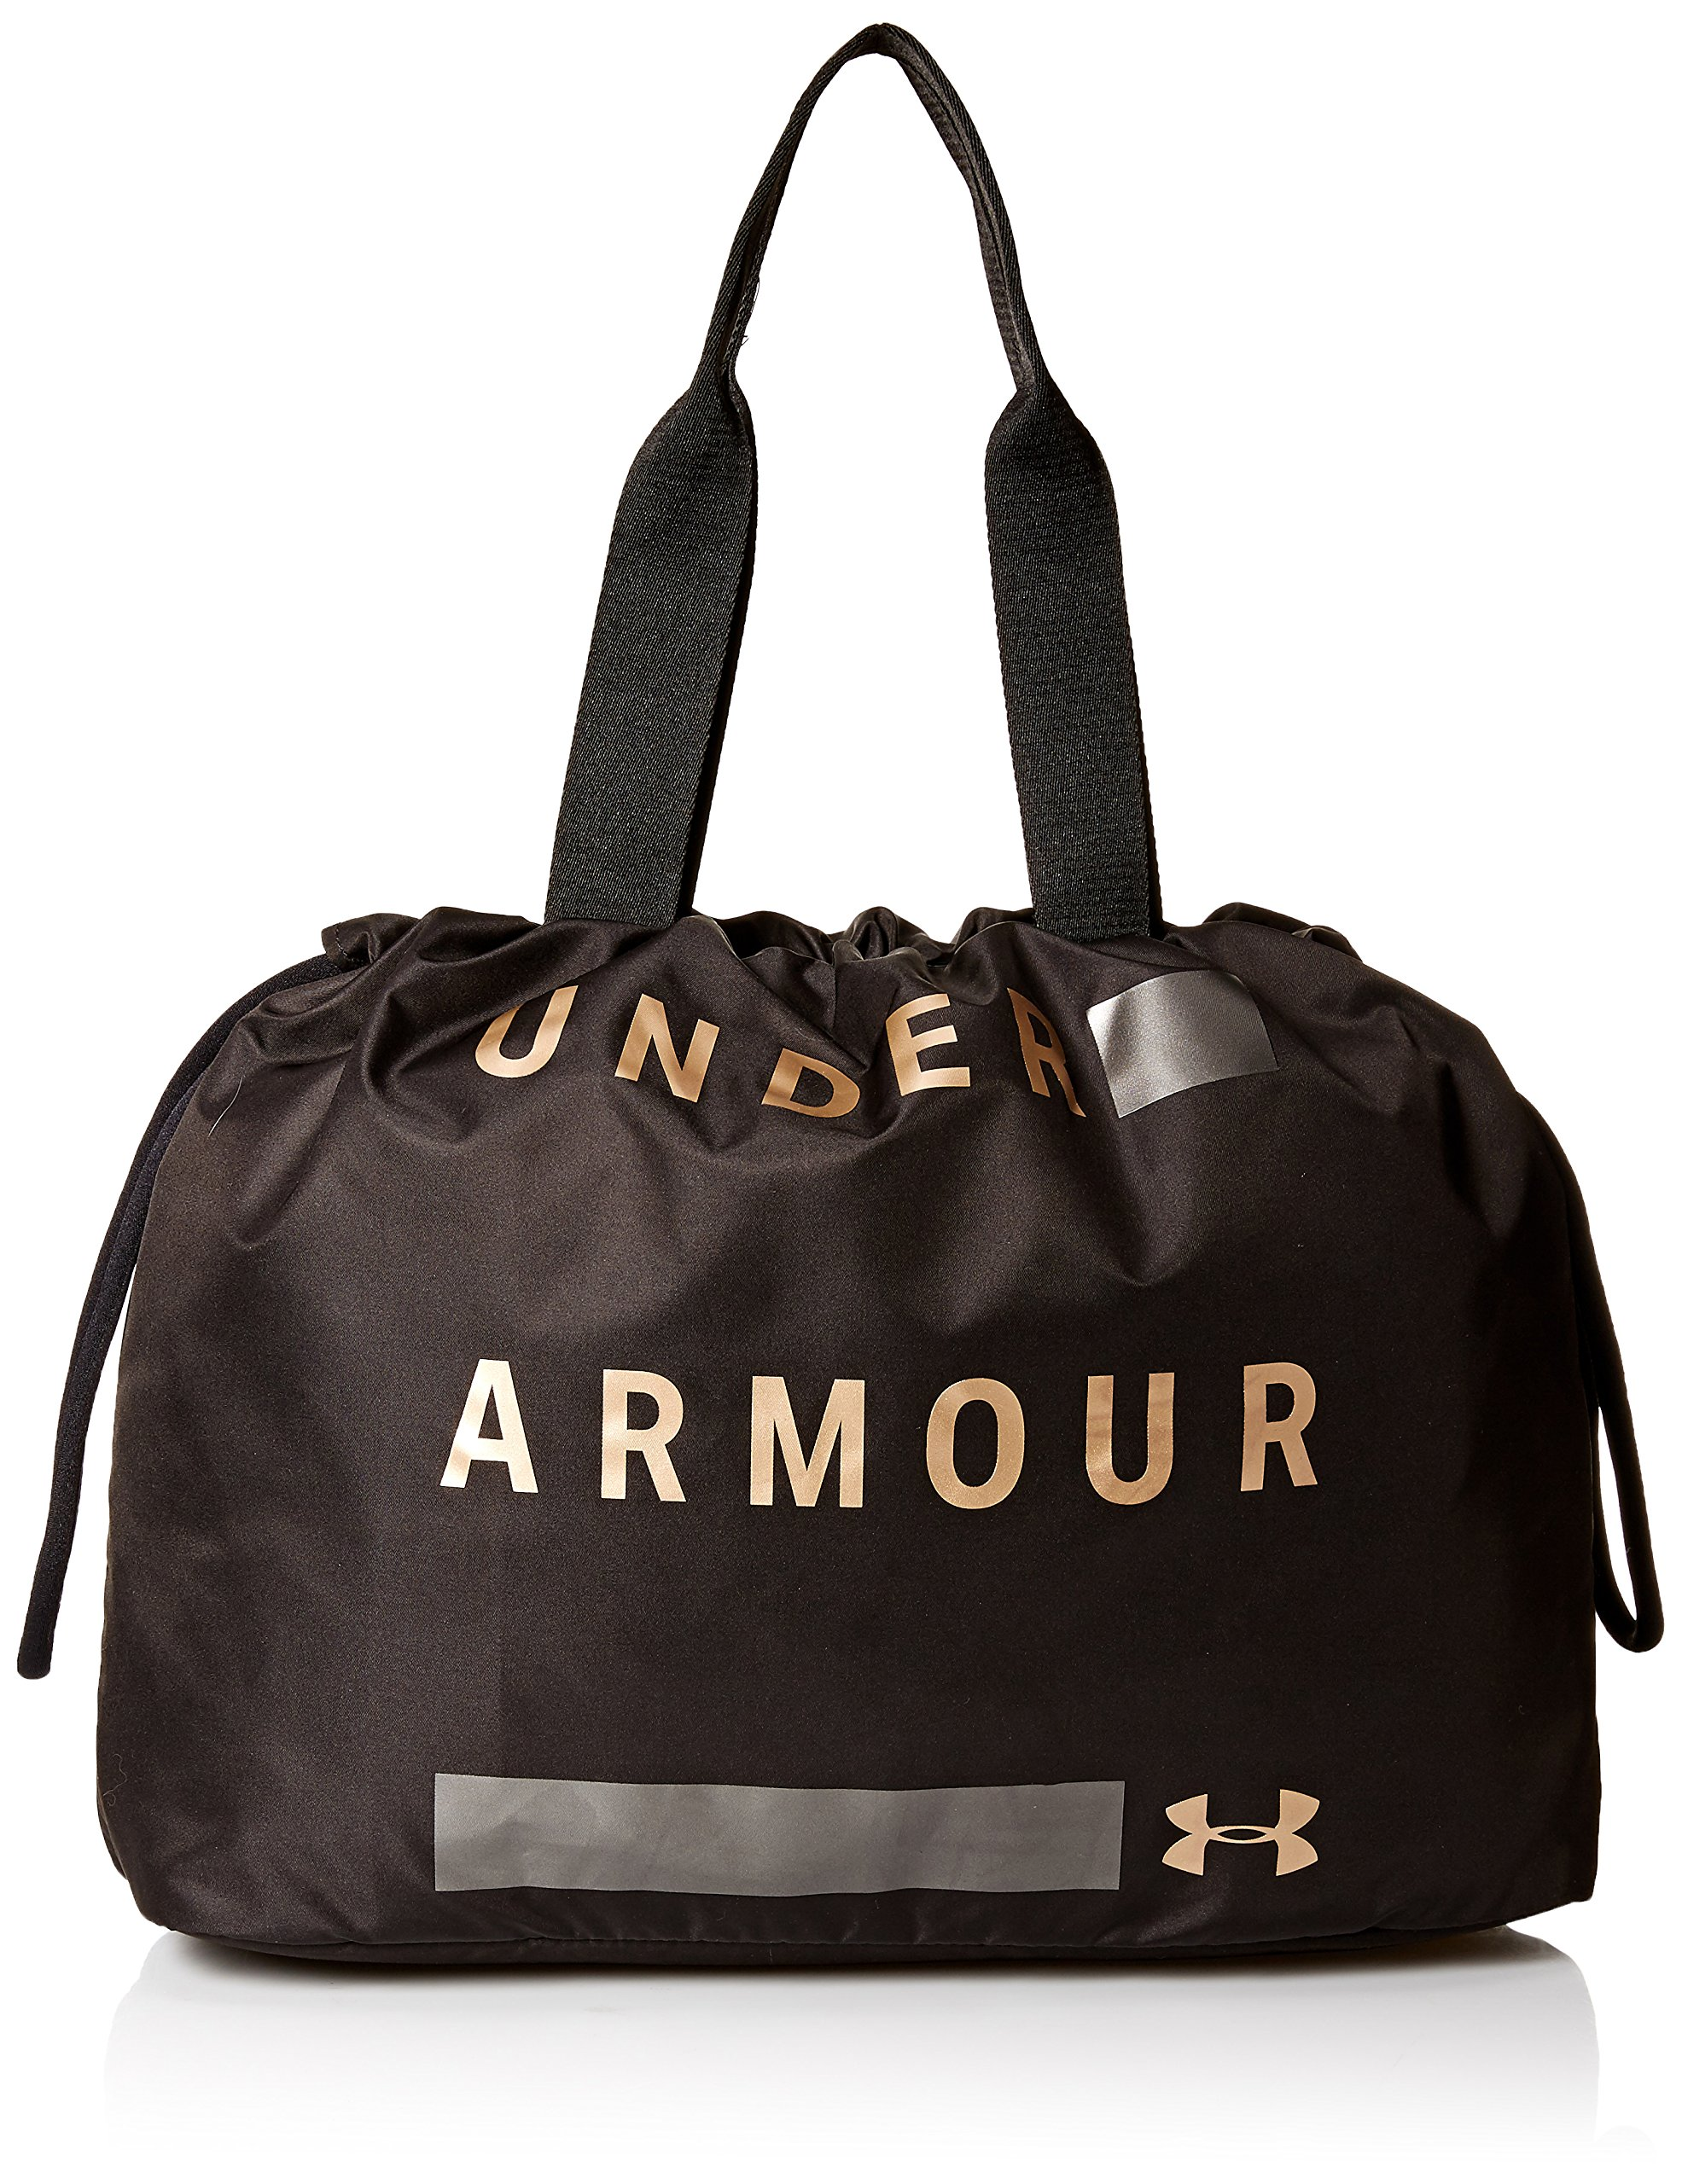 Under Armour Women's Favorite Tote Bag, Black (001), One Size